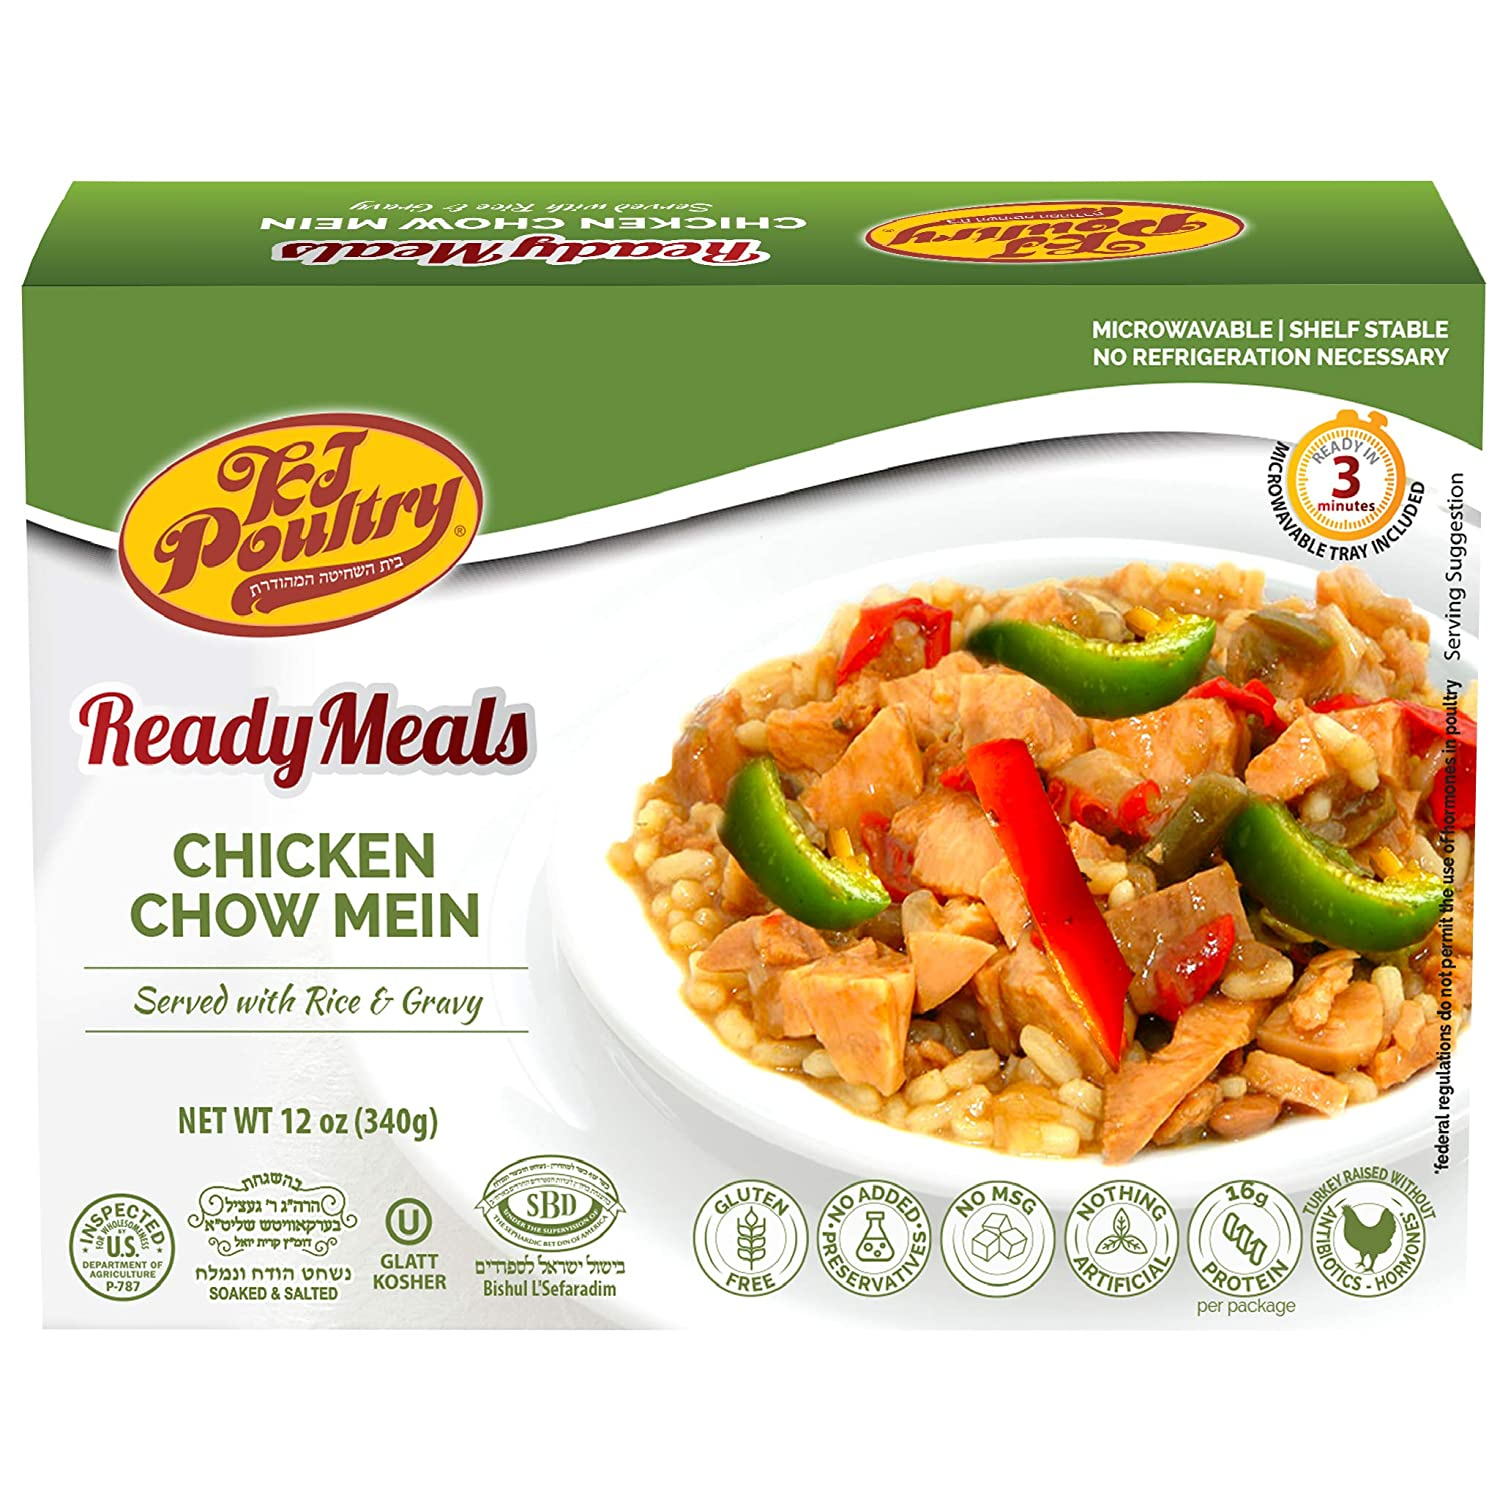 Kosher Mre Meat Meals Ready to Eat, Gluten Free Chicken Chow Mein (1 Pack) - Prepared Entree Fully Cooked, Shelf Stable Microwave Dinner – Travel, Military, Camping, Emergency Survival Canned Food